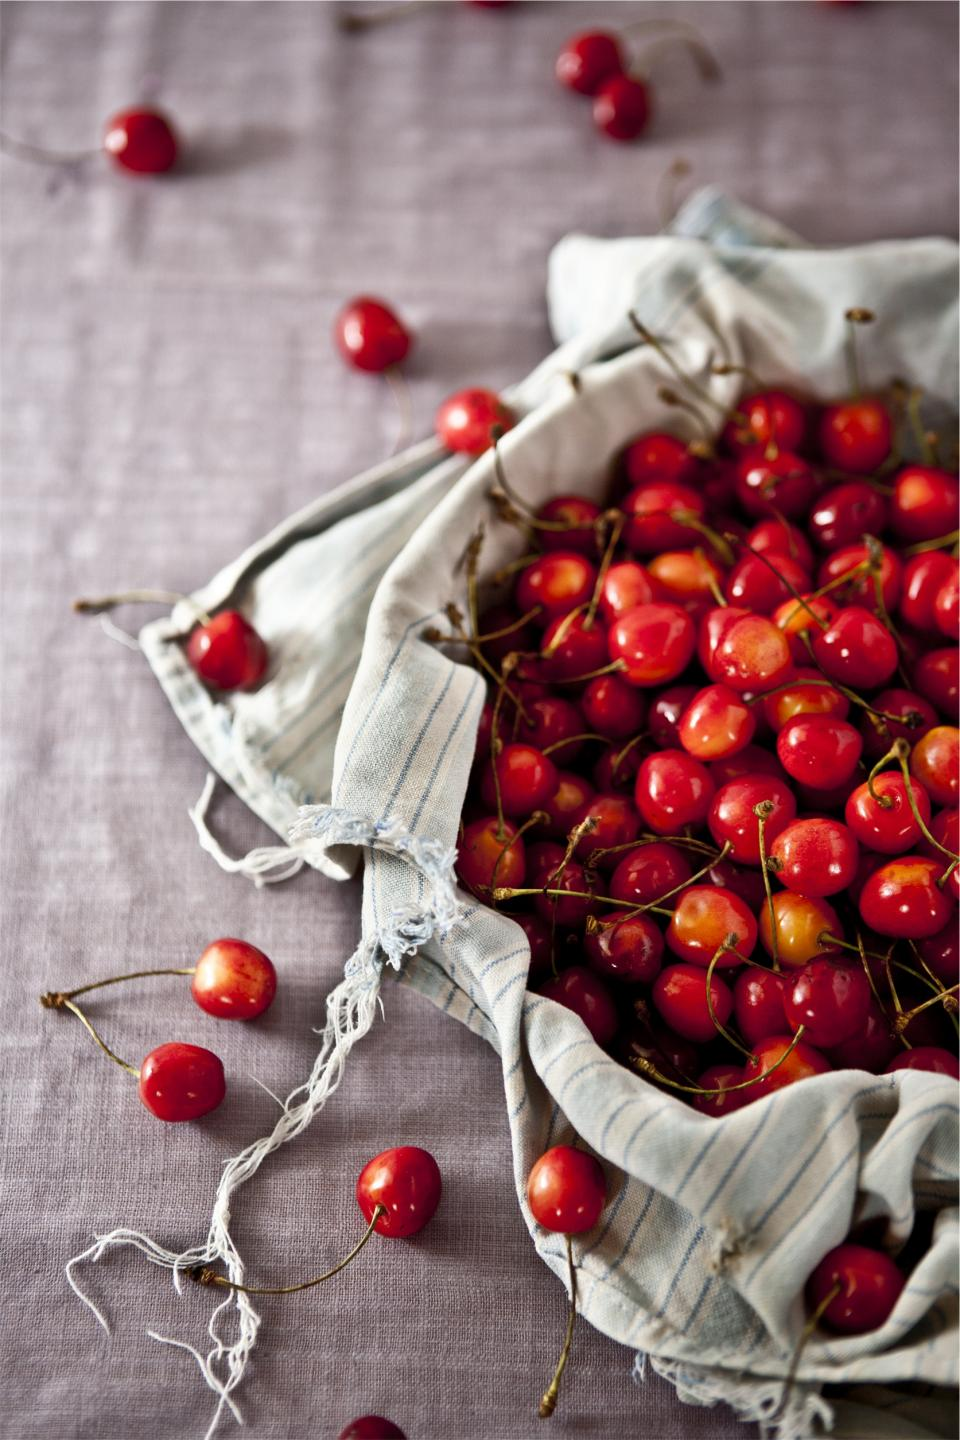 Healthy fruits food cherries